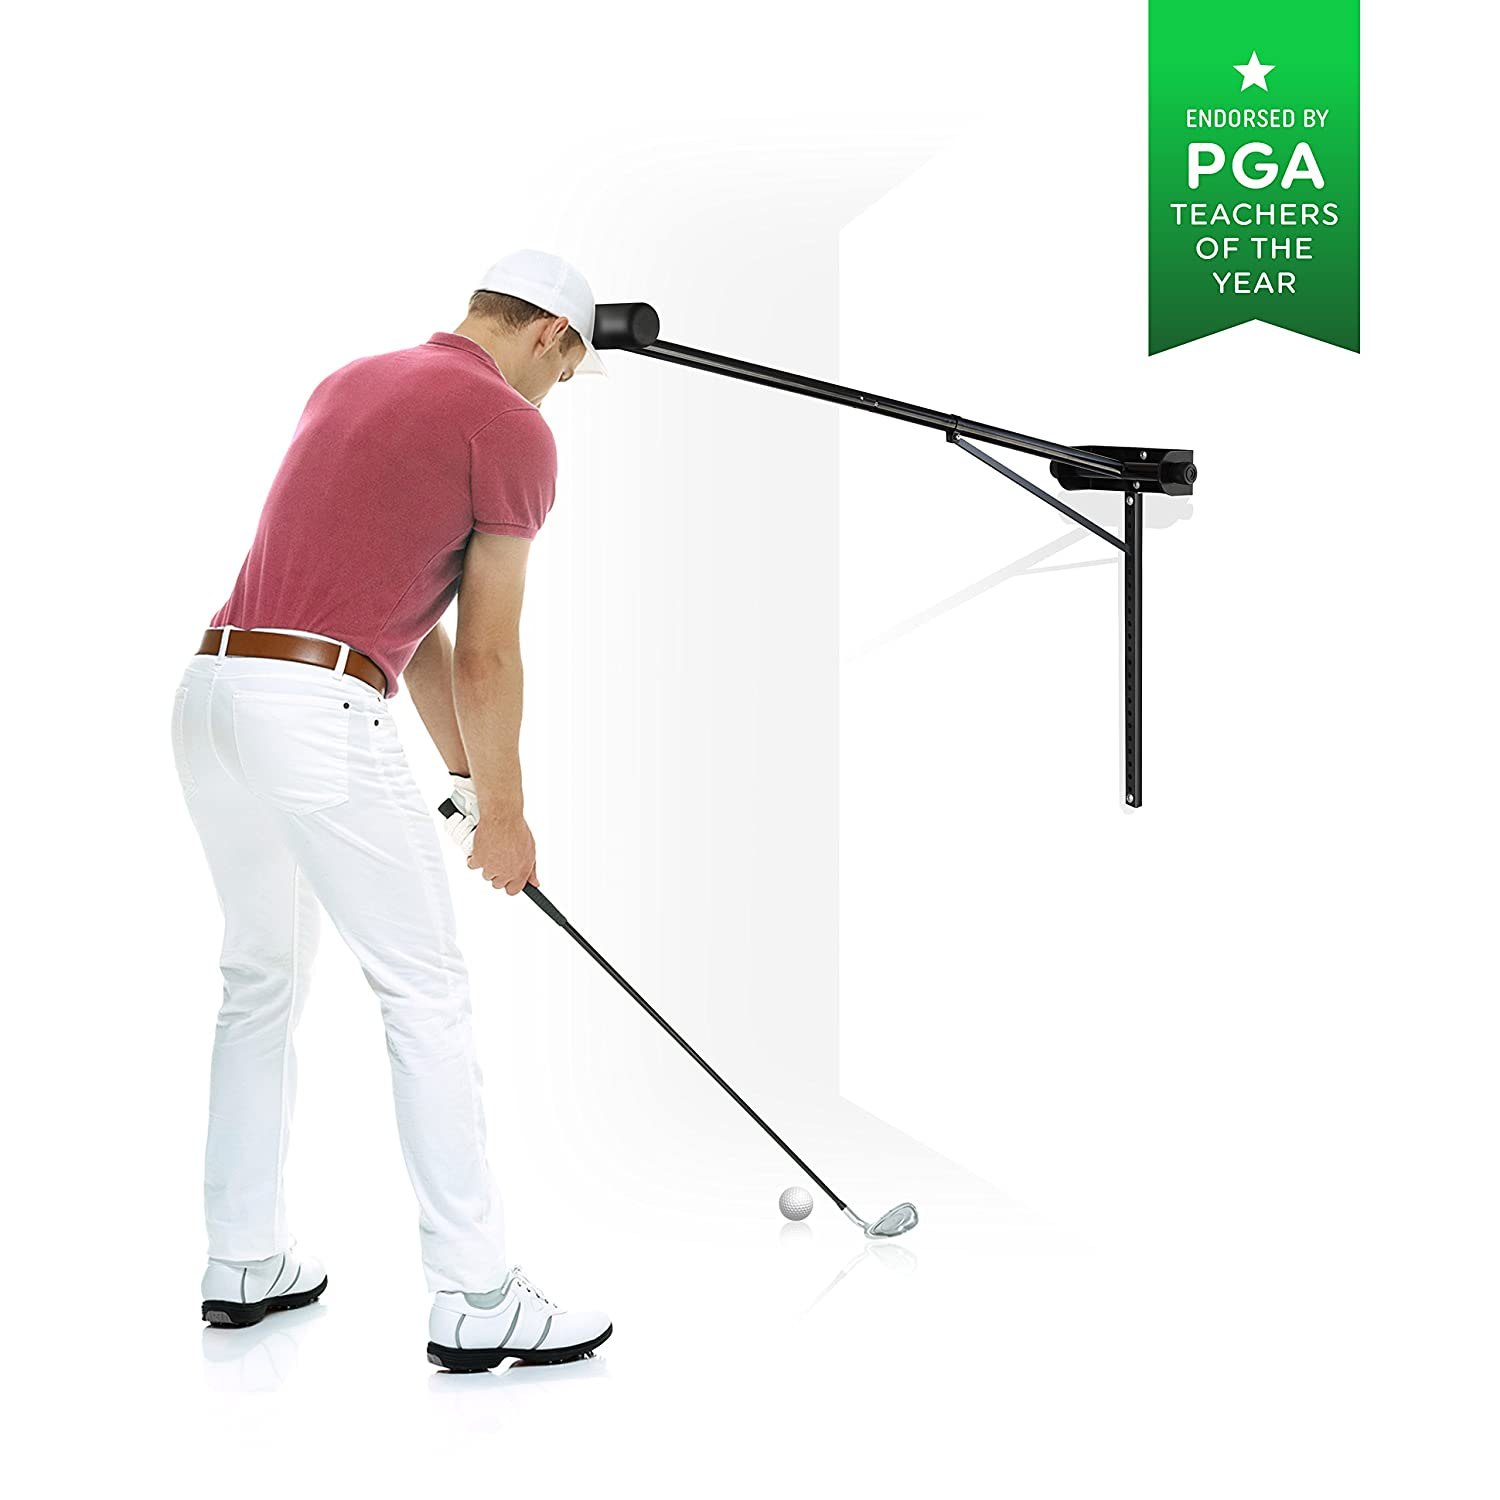 c1cd02a99718 Amazon.com   PRO-HEAD Golf Swing Trainer Golf Training Aid for All Golfers  - Posture Correcting Tool (Mounted)   Sports   Outdoors